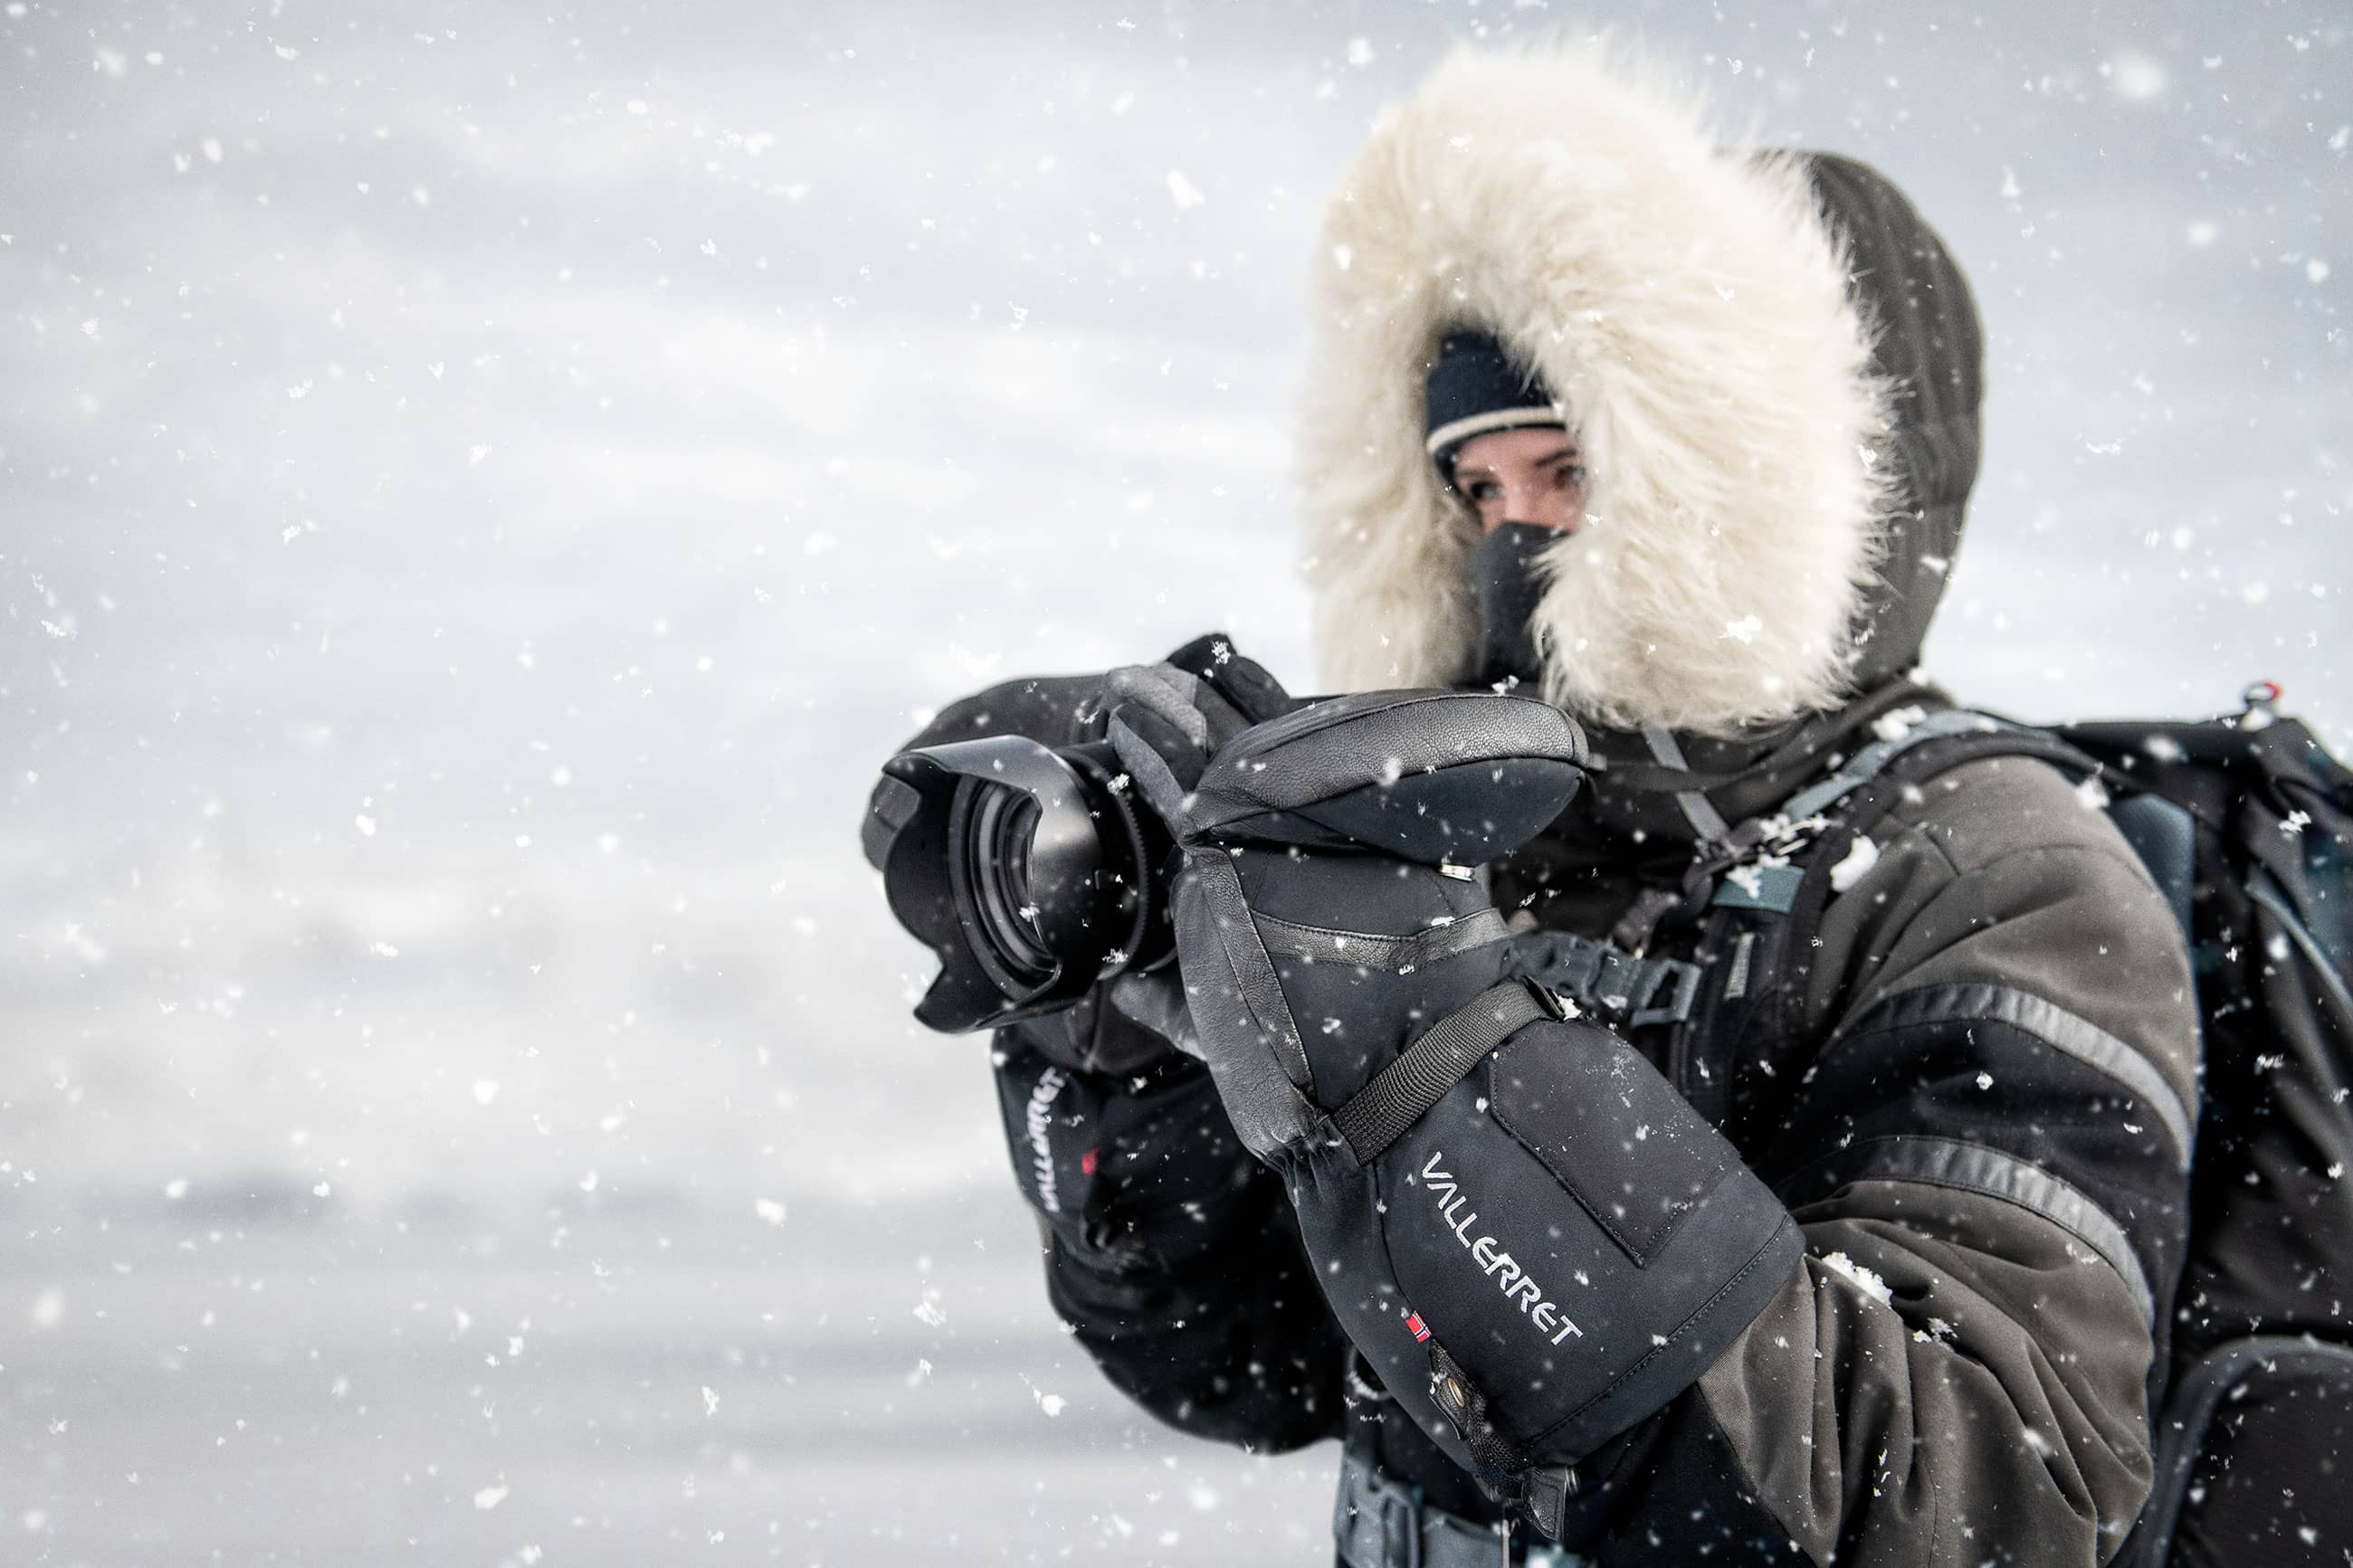 photographer in arctic conditions